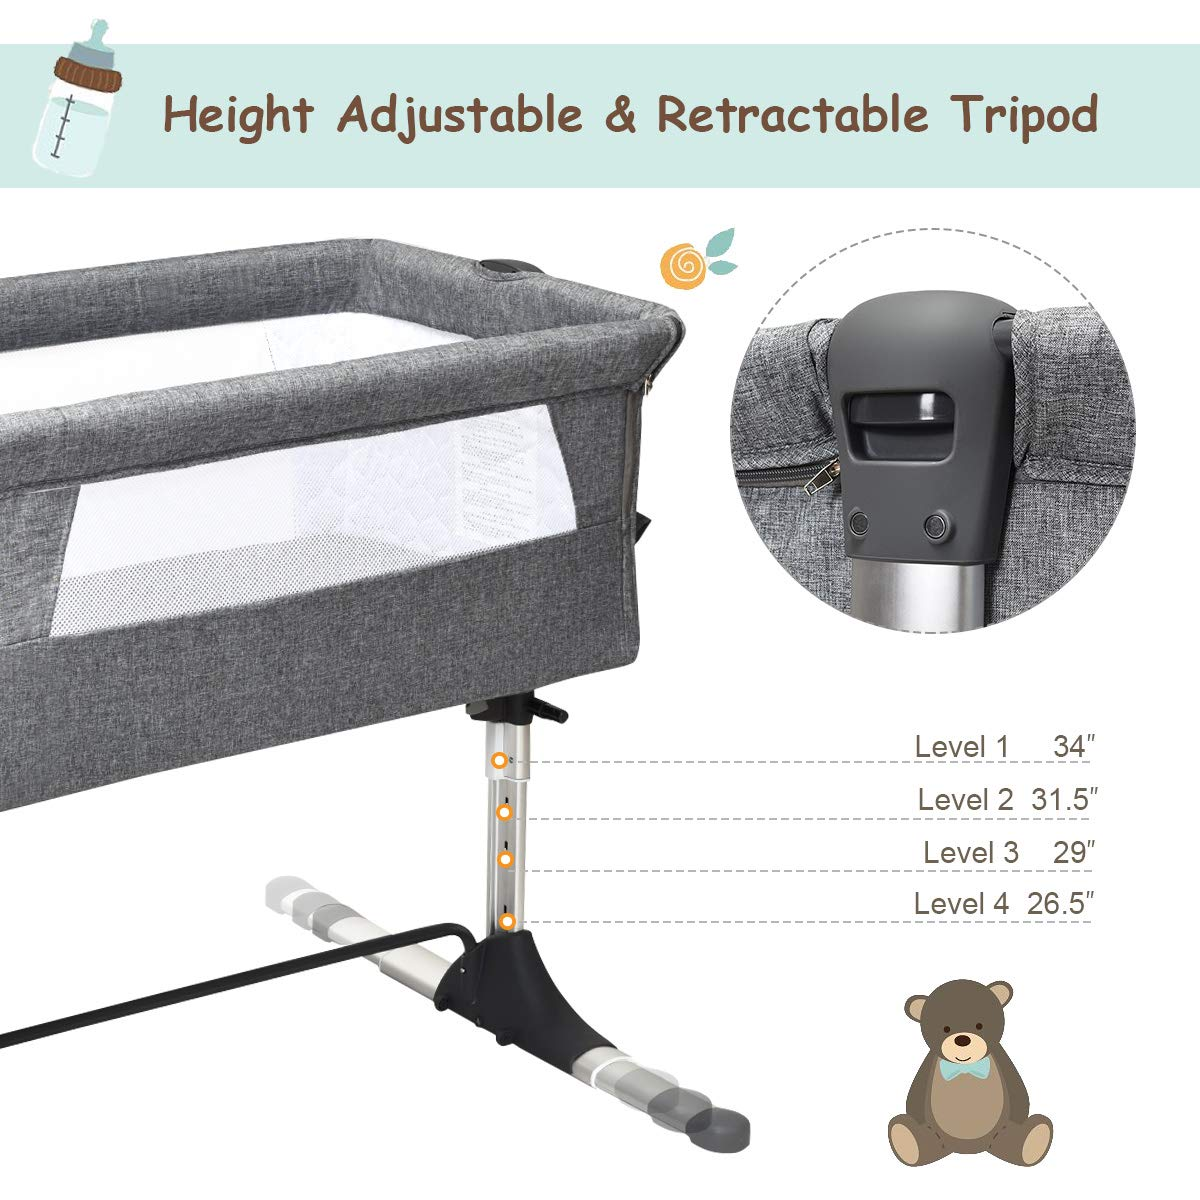 Detachable Mattress Height /& Angle Adjustable Breathable Mesh Easy Folding Portable Baby Bassinet Bedside Sleeper for Newborn Infant with Carrying Bag Straps GLACER Baby Bedside Crib